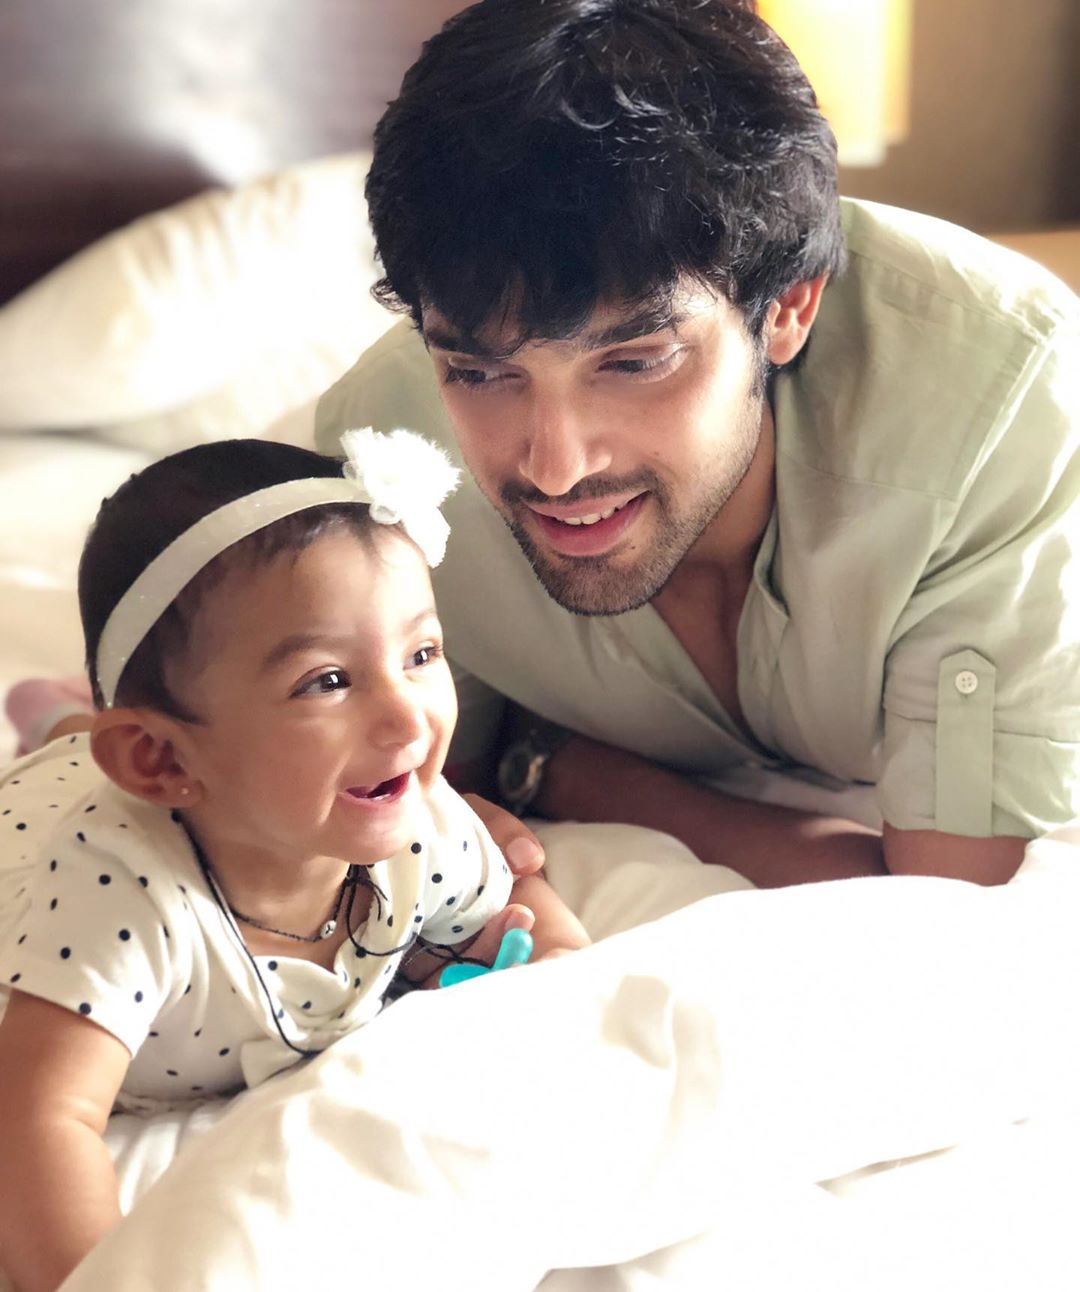 Parth and his niece